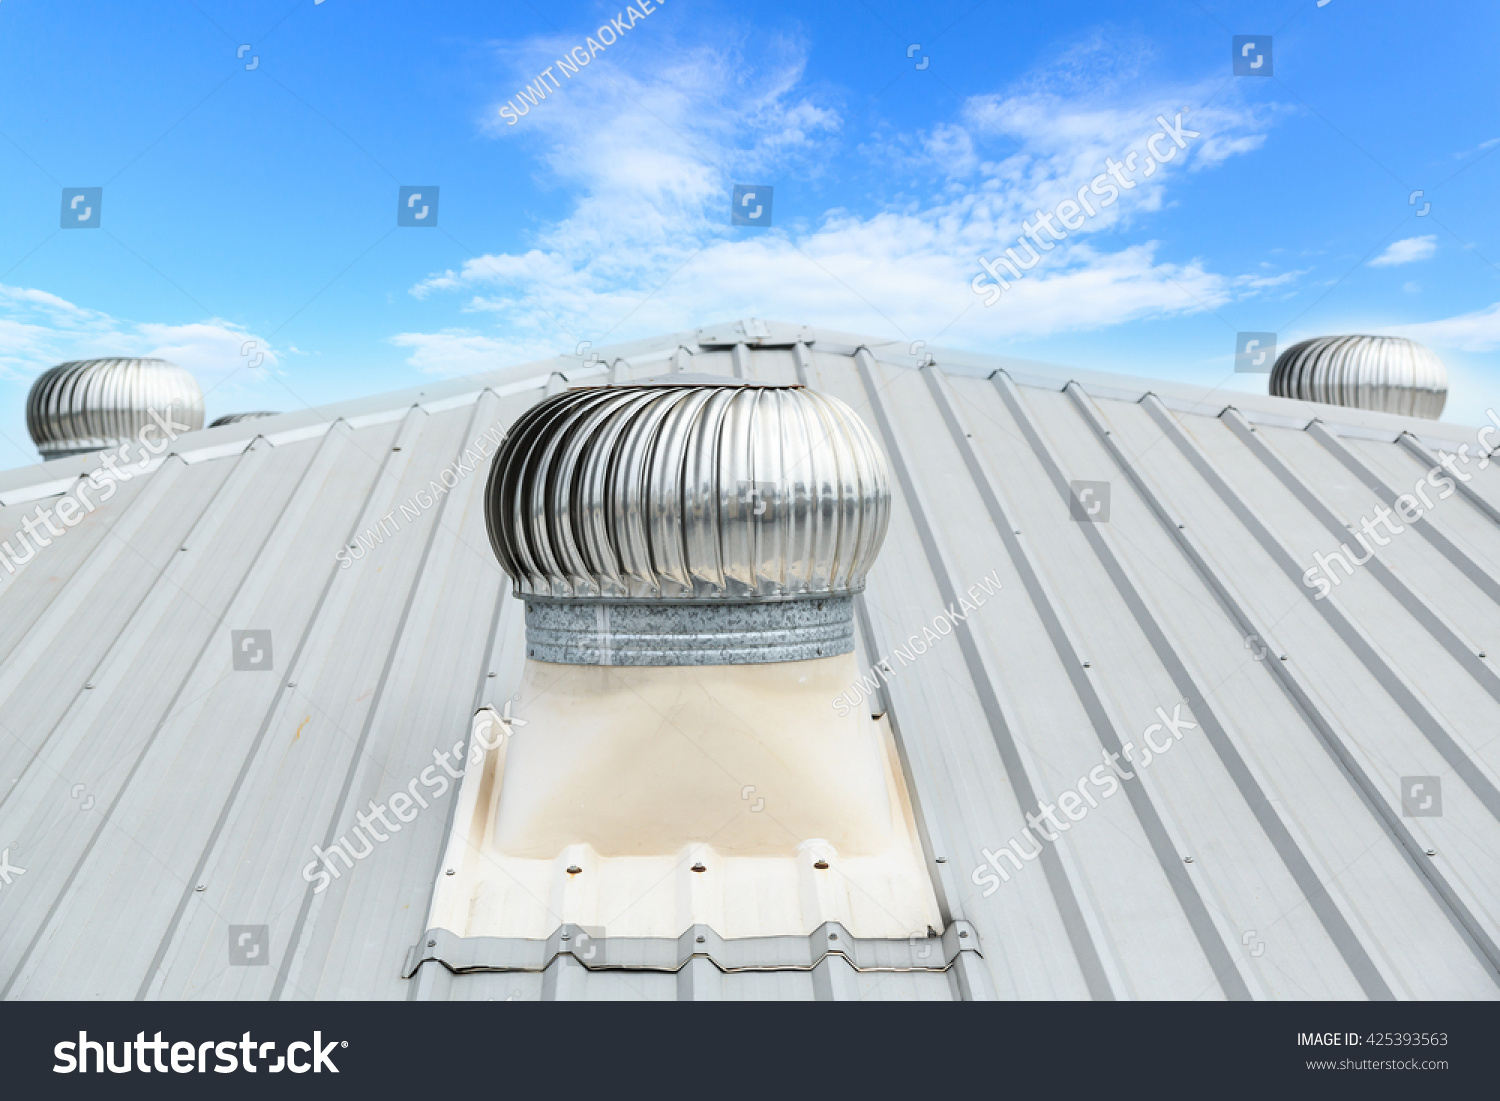 air ventilator on roof factory stock photo 425393563 - shutterstock